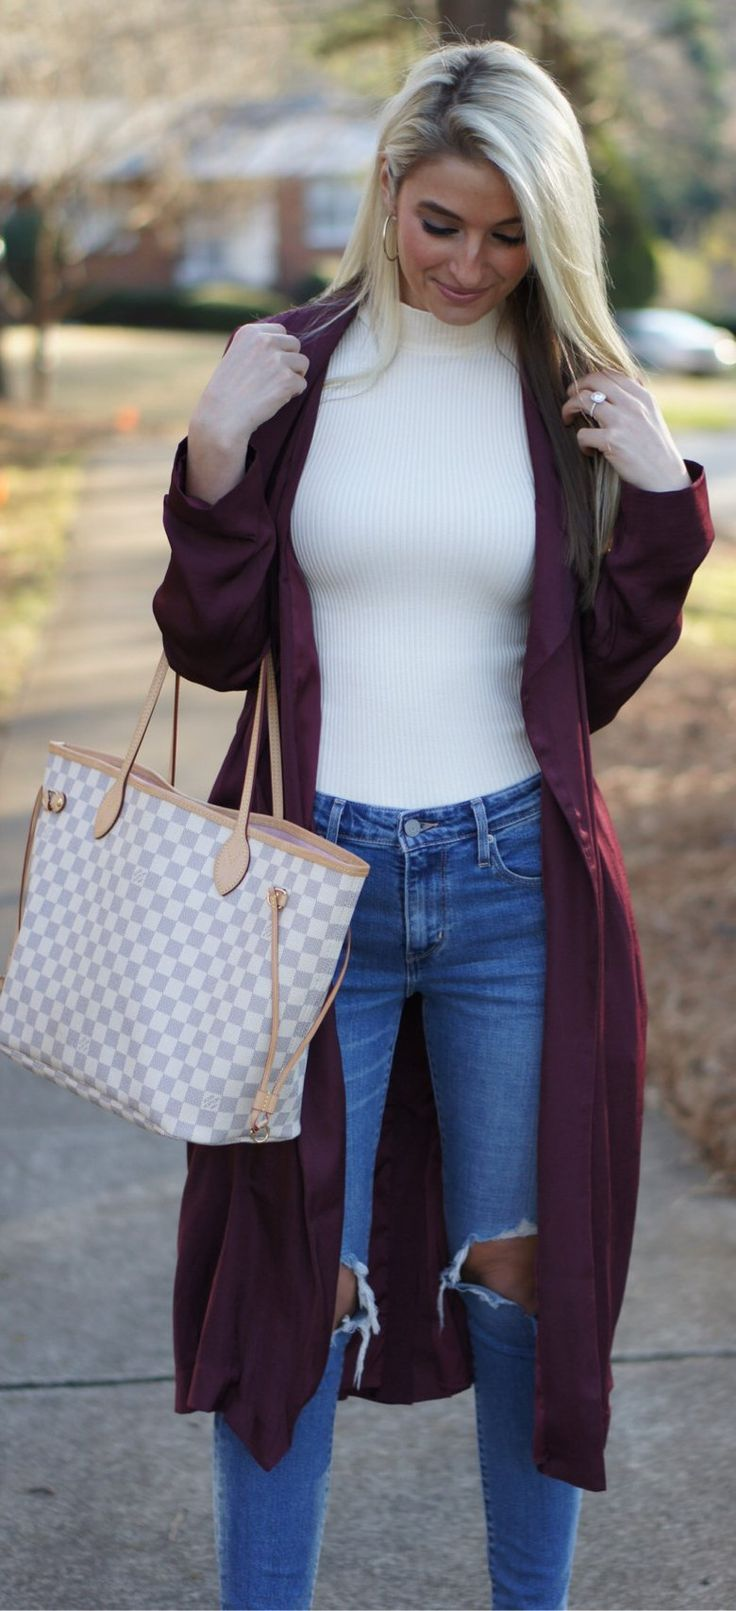 Best 25+ Burgundy Outfit Ideas On Pinterest